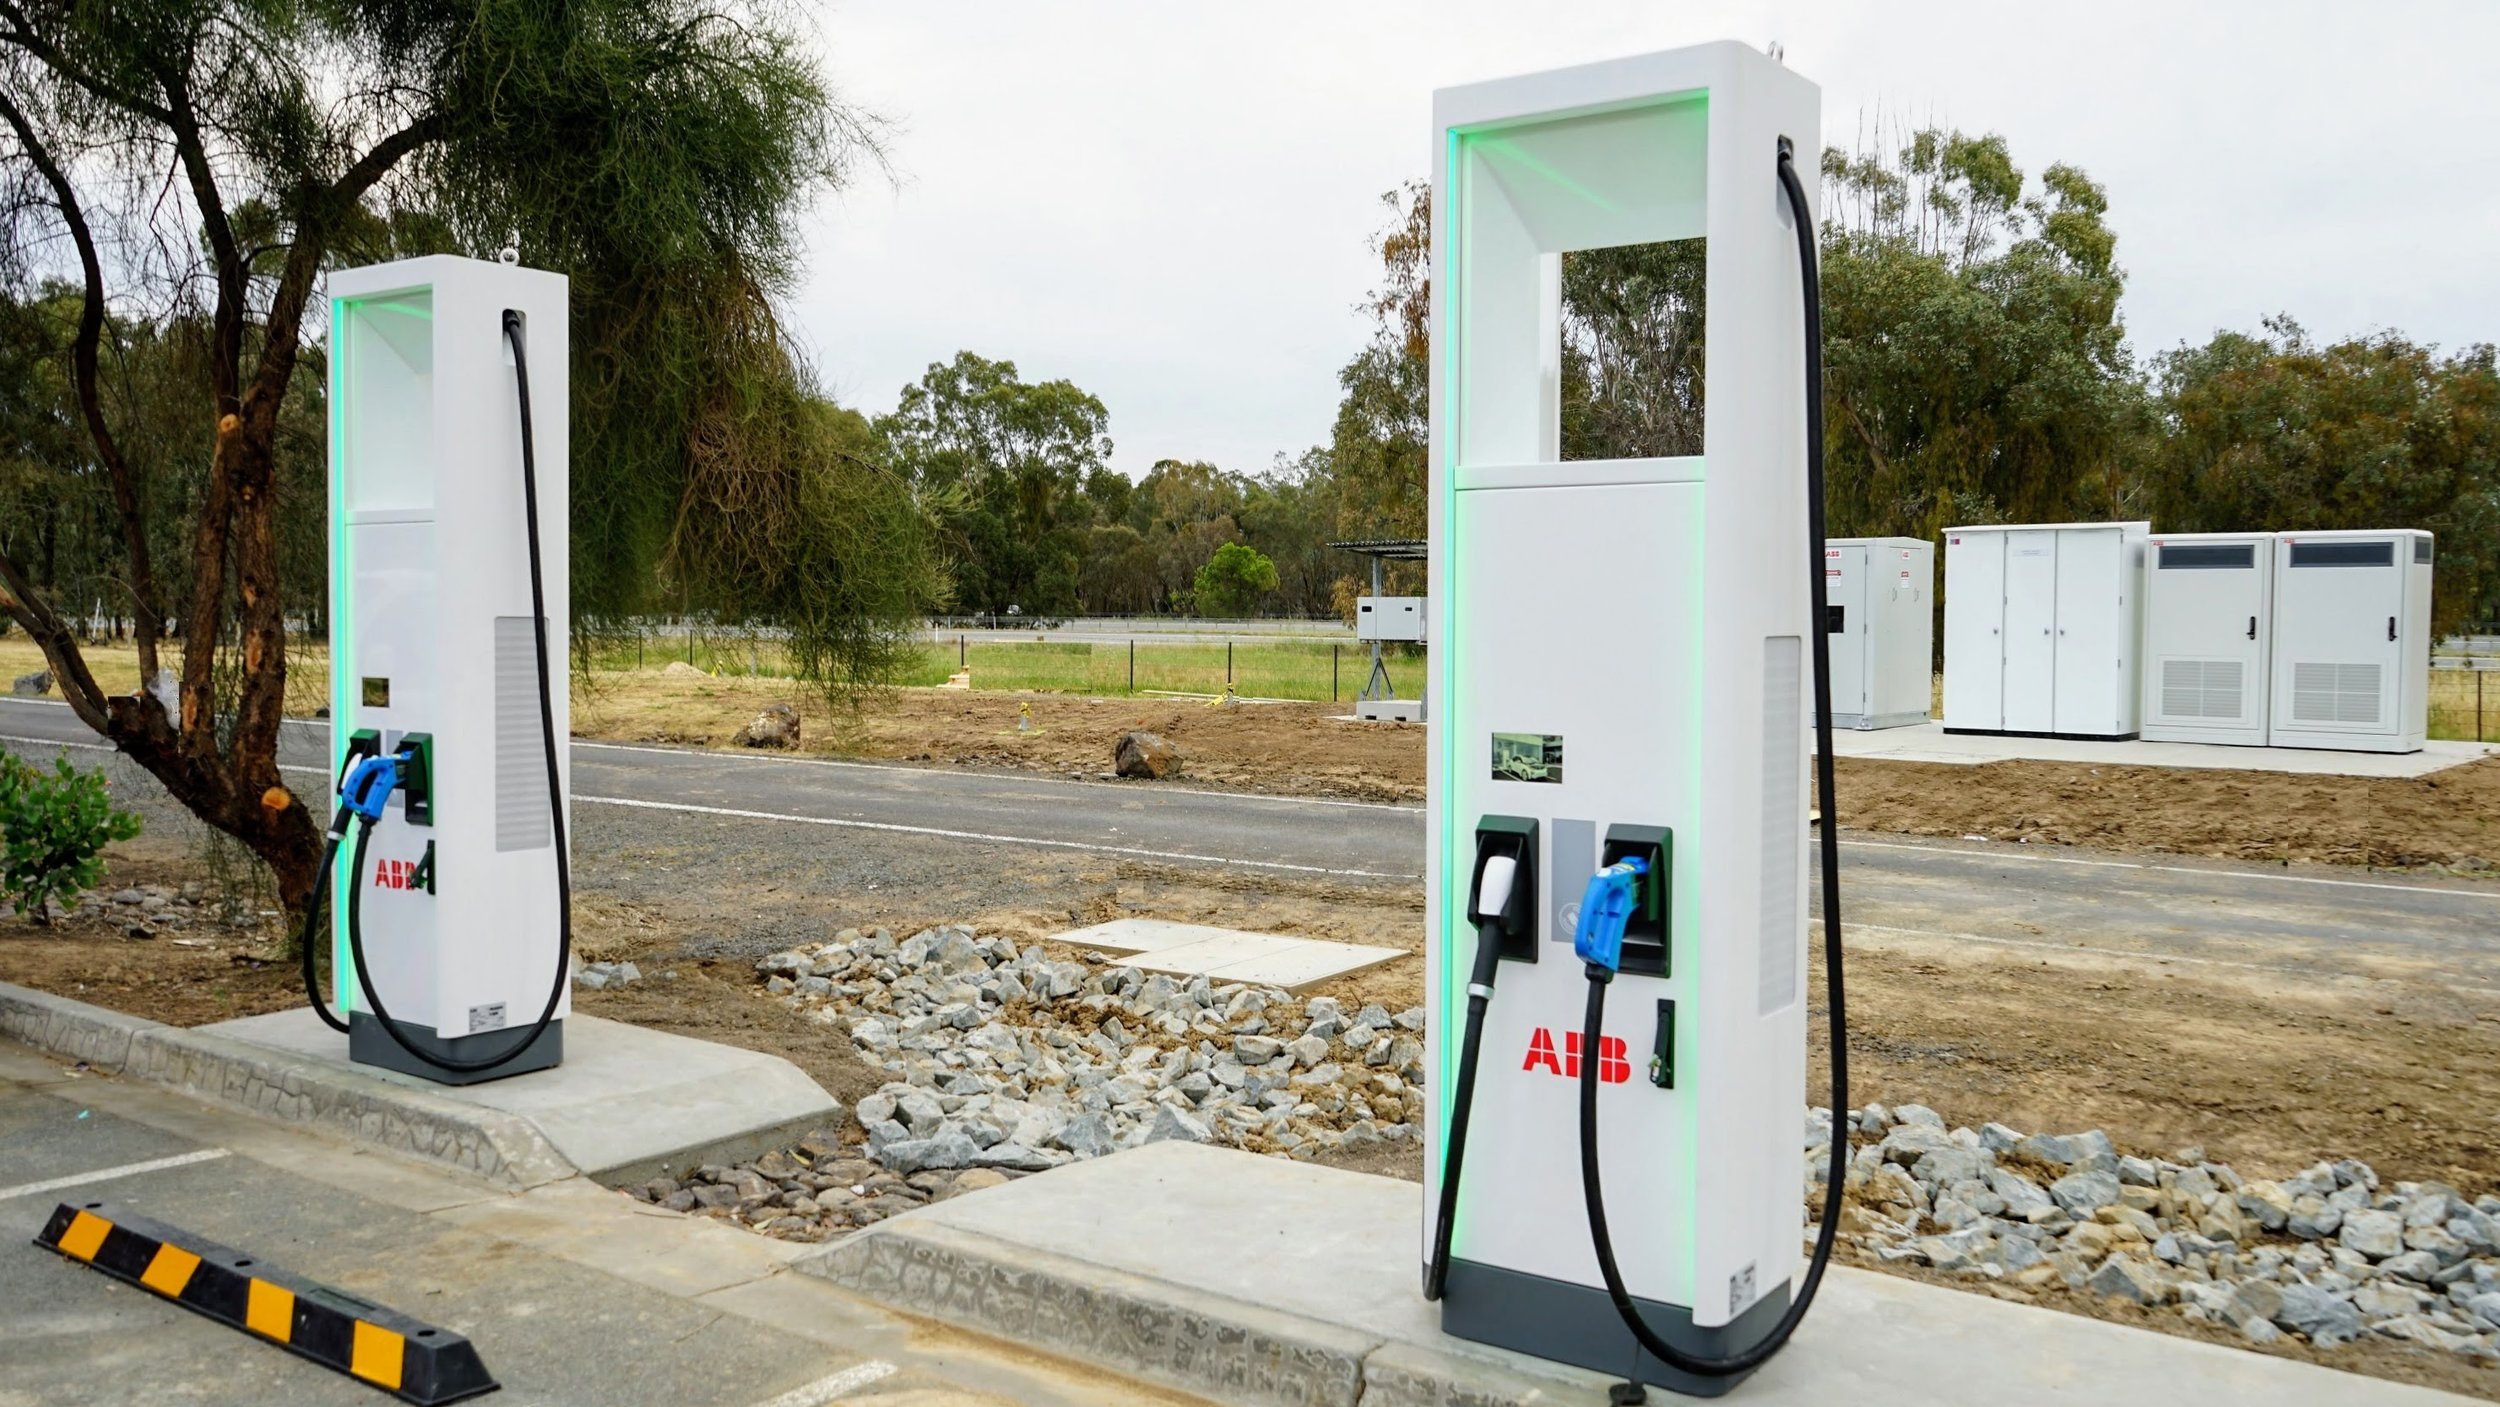 New high-powered charging stations manufactured by ABB. ChargeLab supports a number of leading fast charger manufacturers—including ABB—using the Open Charge Point Protocol (OCPP)